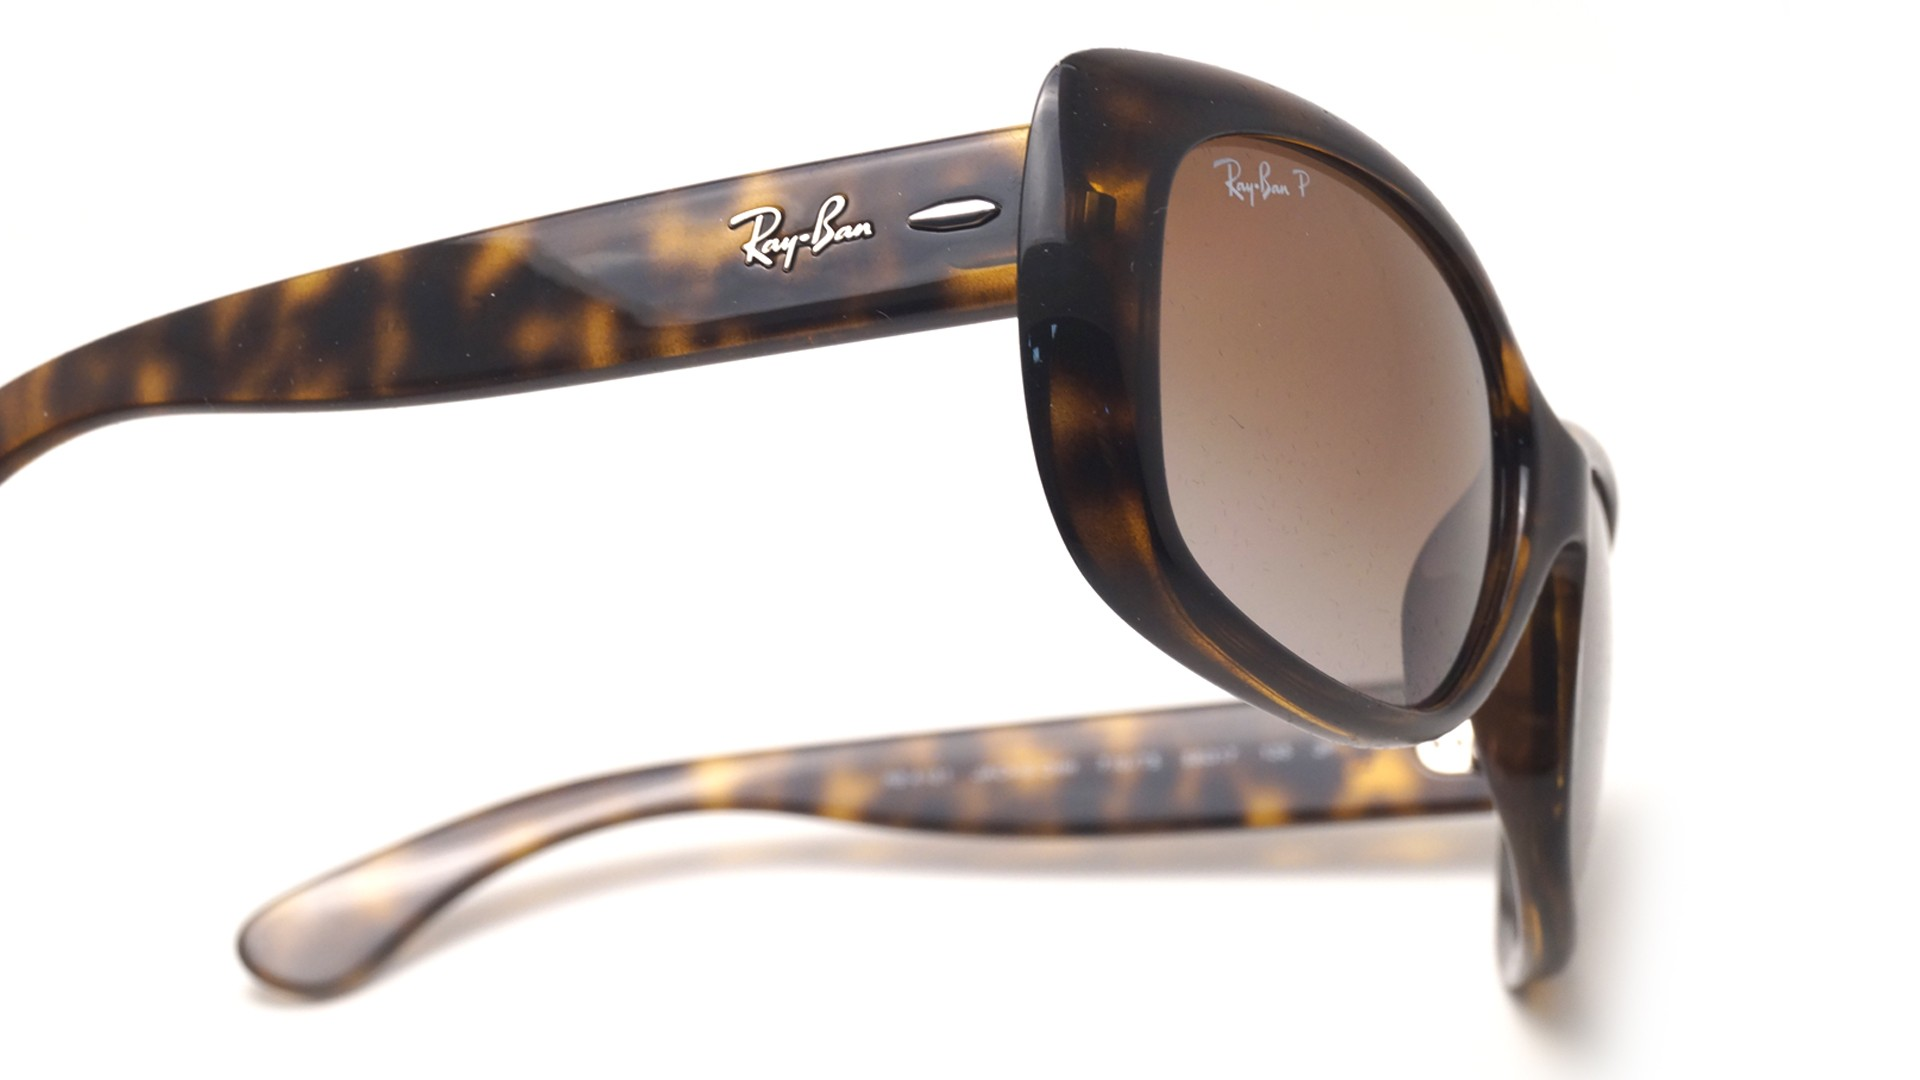 d75fde2ef0 Sunglasses Ray-Ban Jackie Ohh Tortoise RB4101 710 T5 58-17 Large Polarized  Gradient. 2 reviews